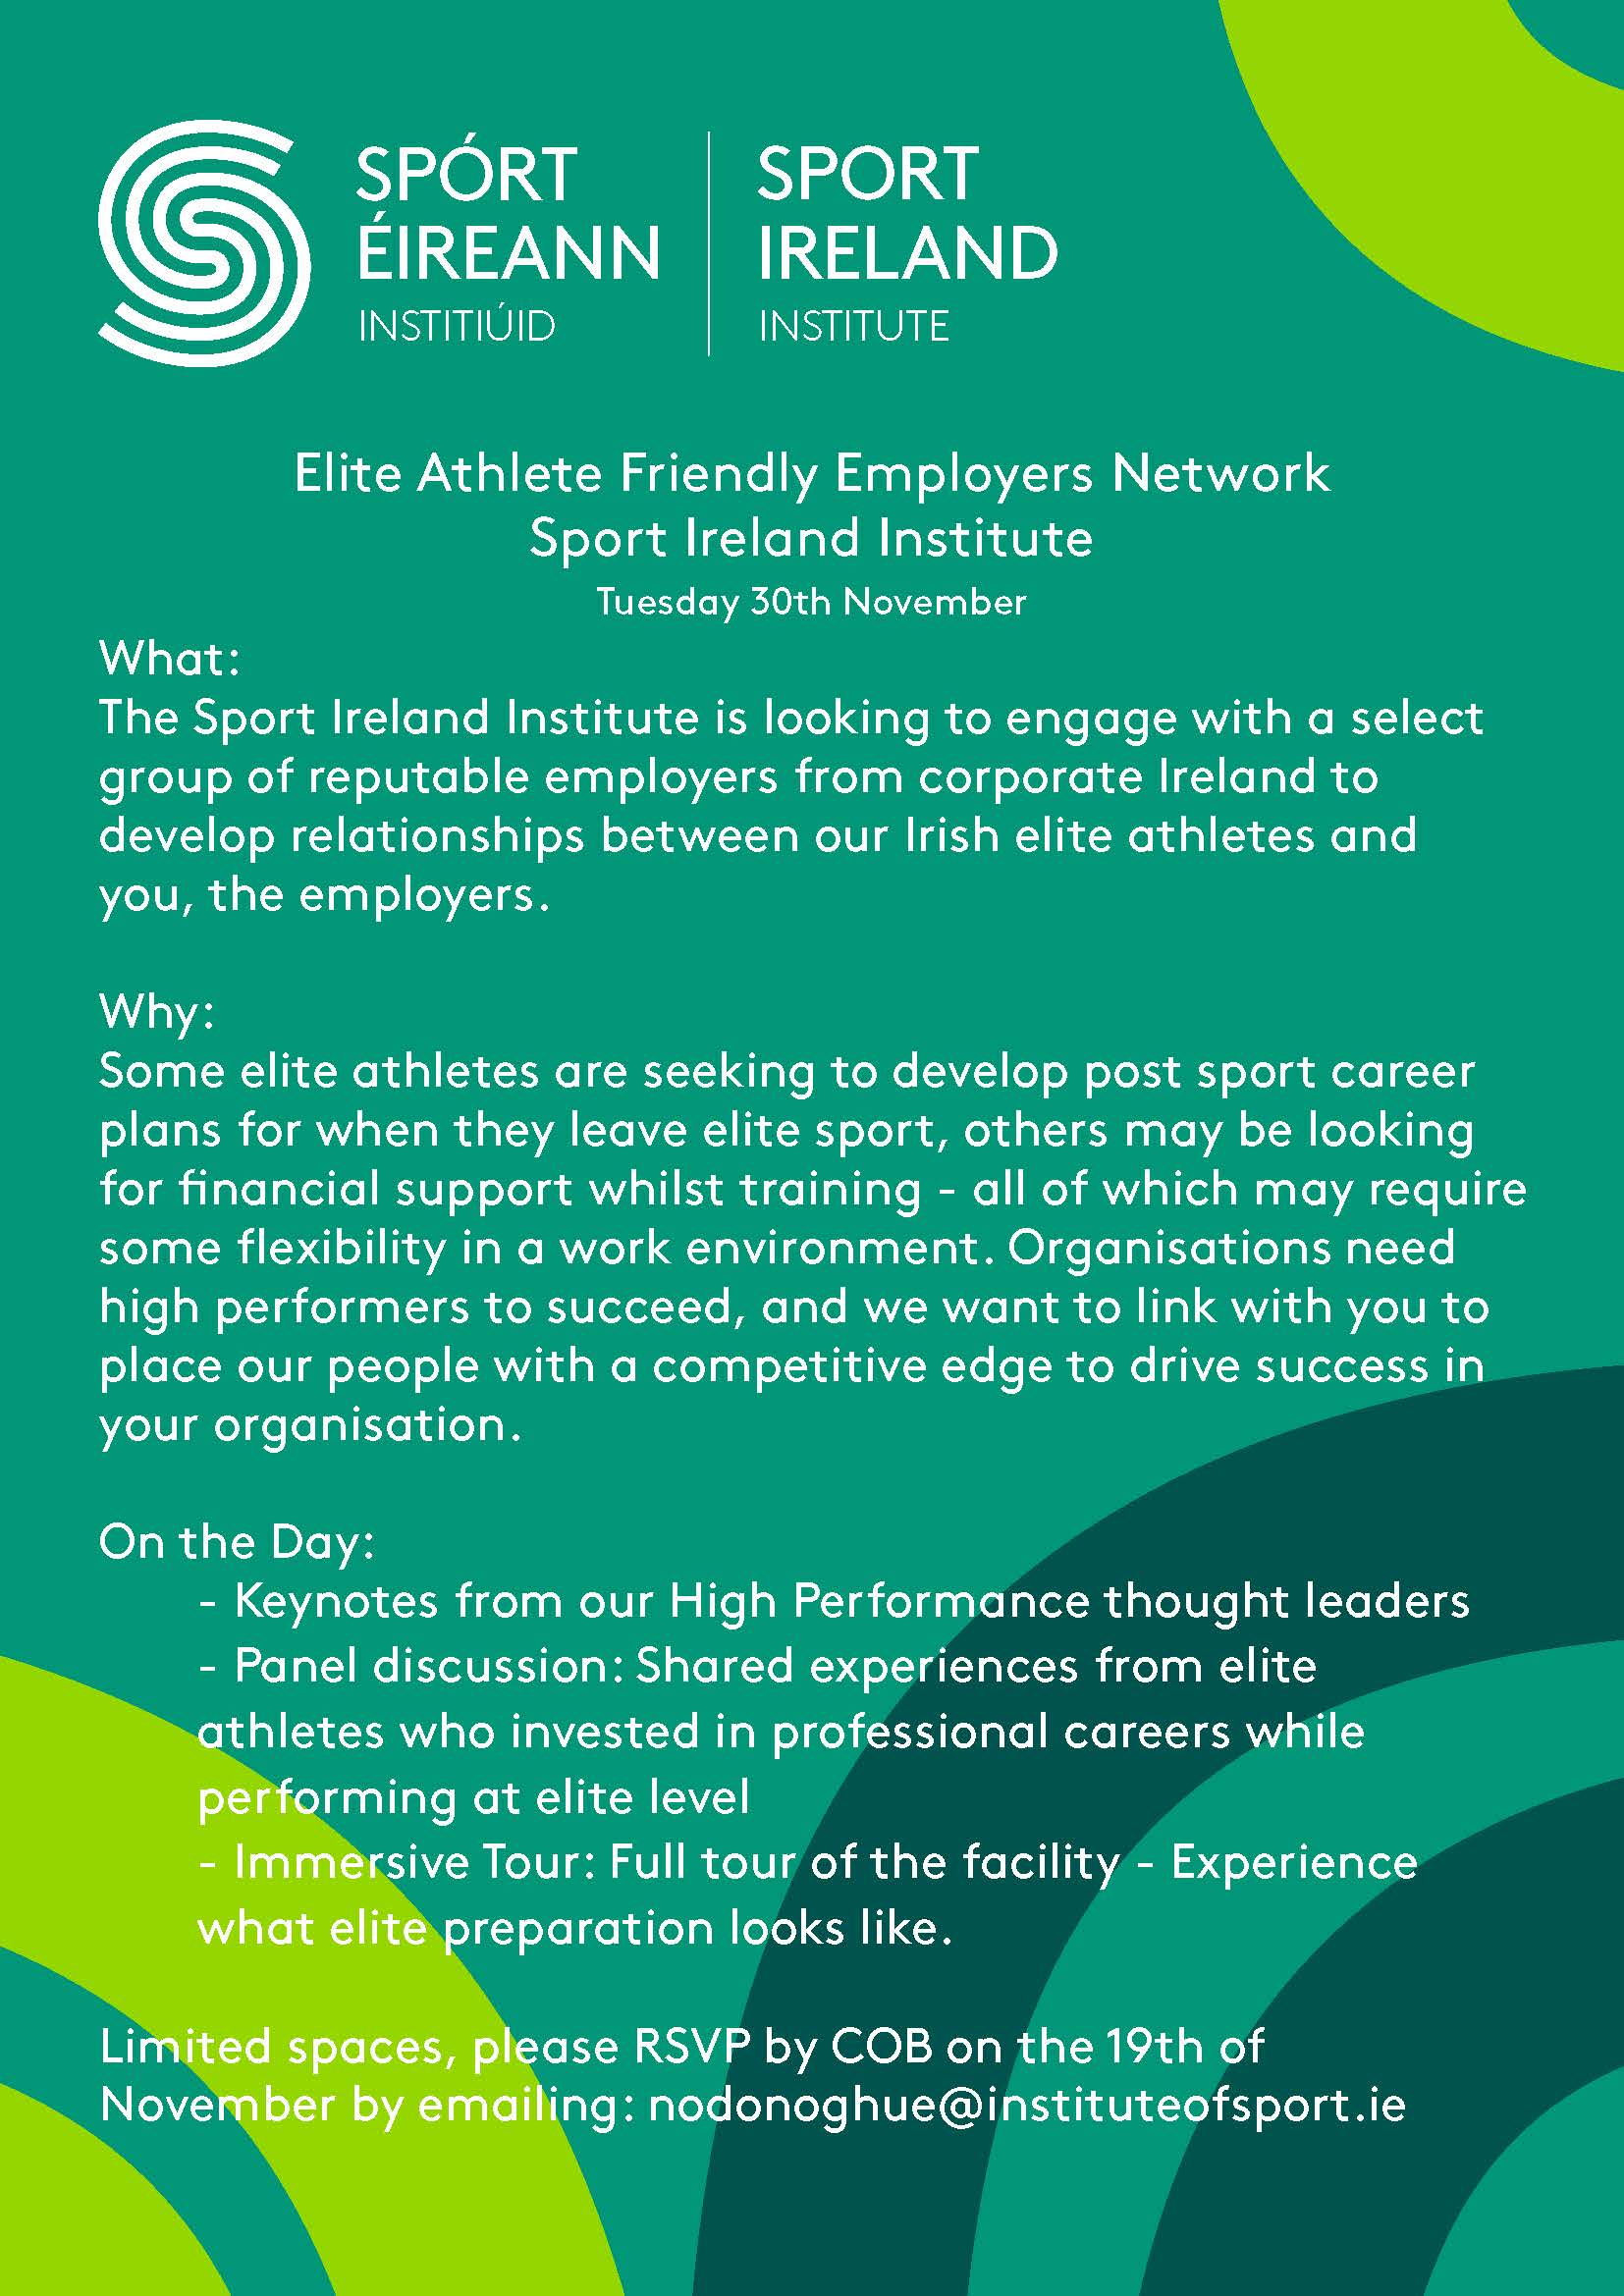 We have a unique pool of highly talented, determined and motivated individuals seeking further development and employment opportunities. - Often athletes are keen to progress their professional careers whilst still competing in their sport at an elite level. Whilst some elite athletes are seeking to develop post sport career plans for when they leave elite sport, others are looking to combine and balance their sporting careers while gaining valuable experience in the workplace.Sport Ireland would like to link with organisations in offering short-term employment/internship opportunities to a small number of our elite athletes.